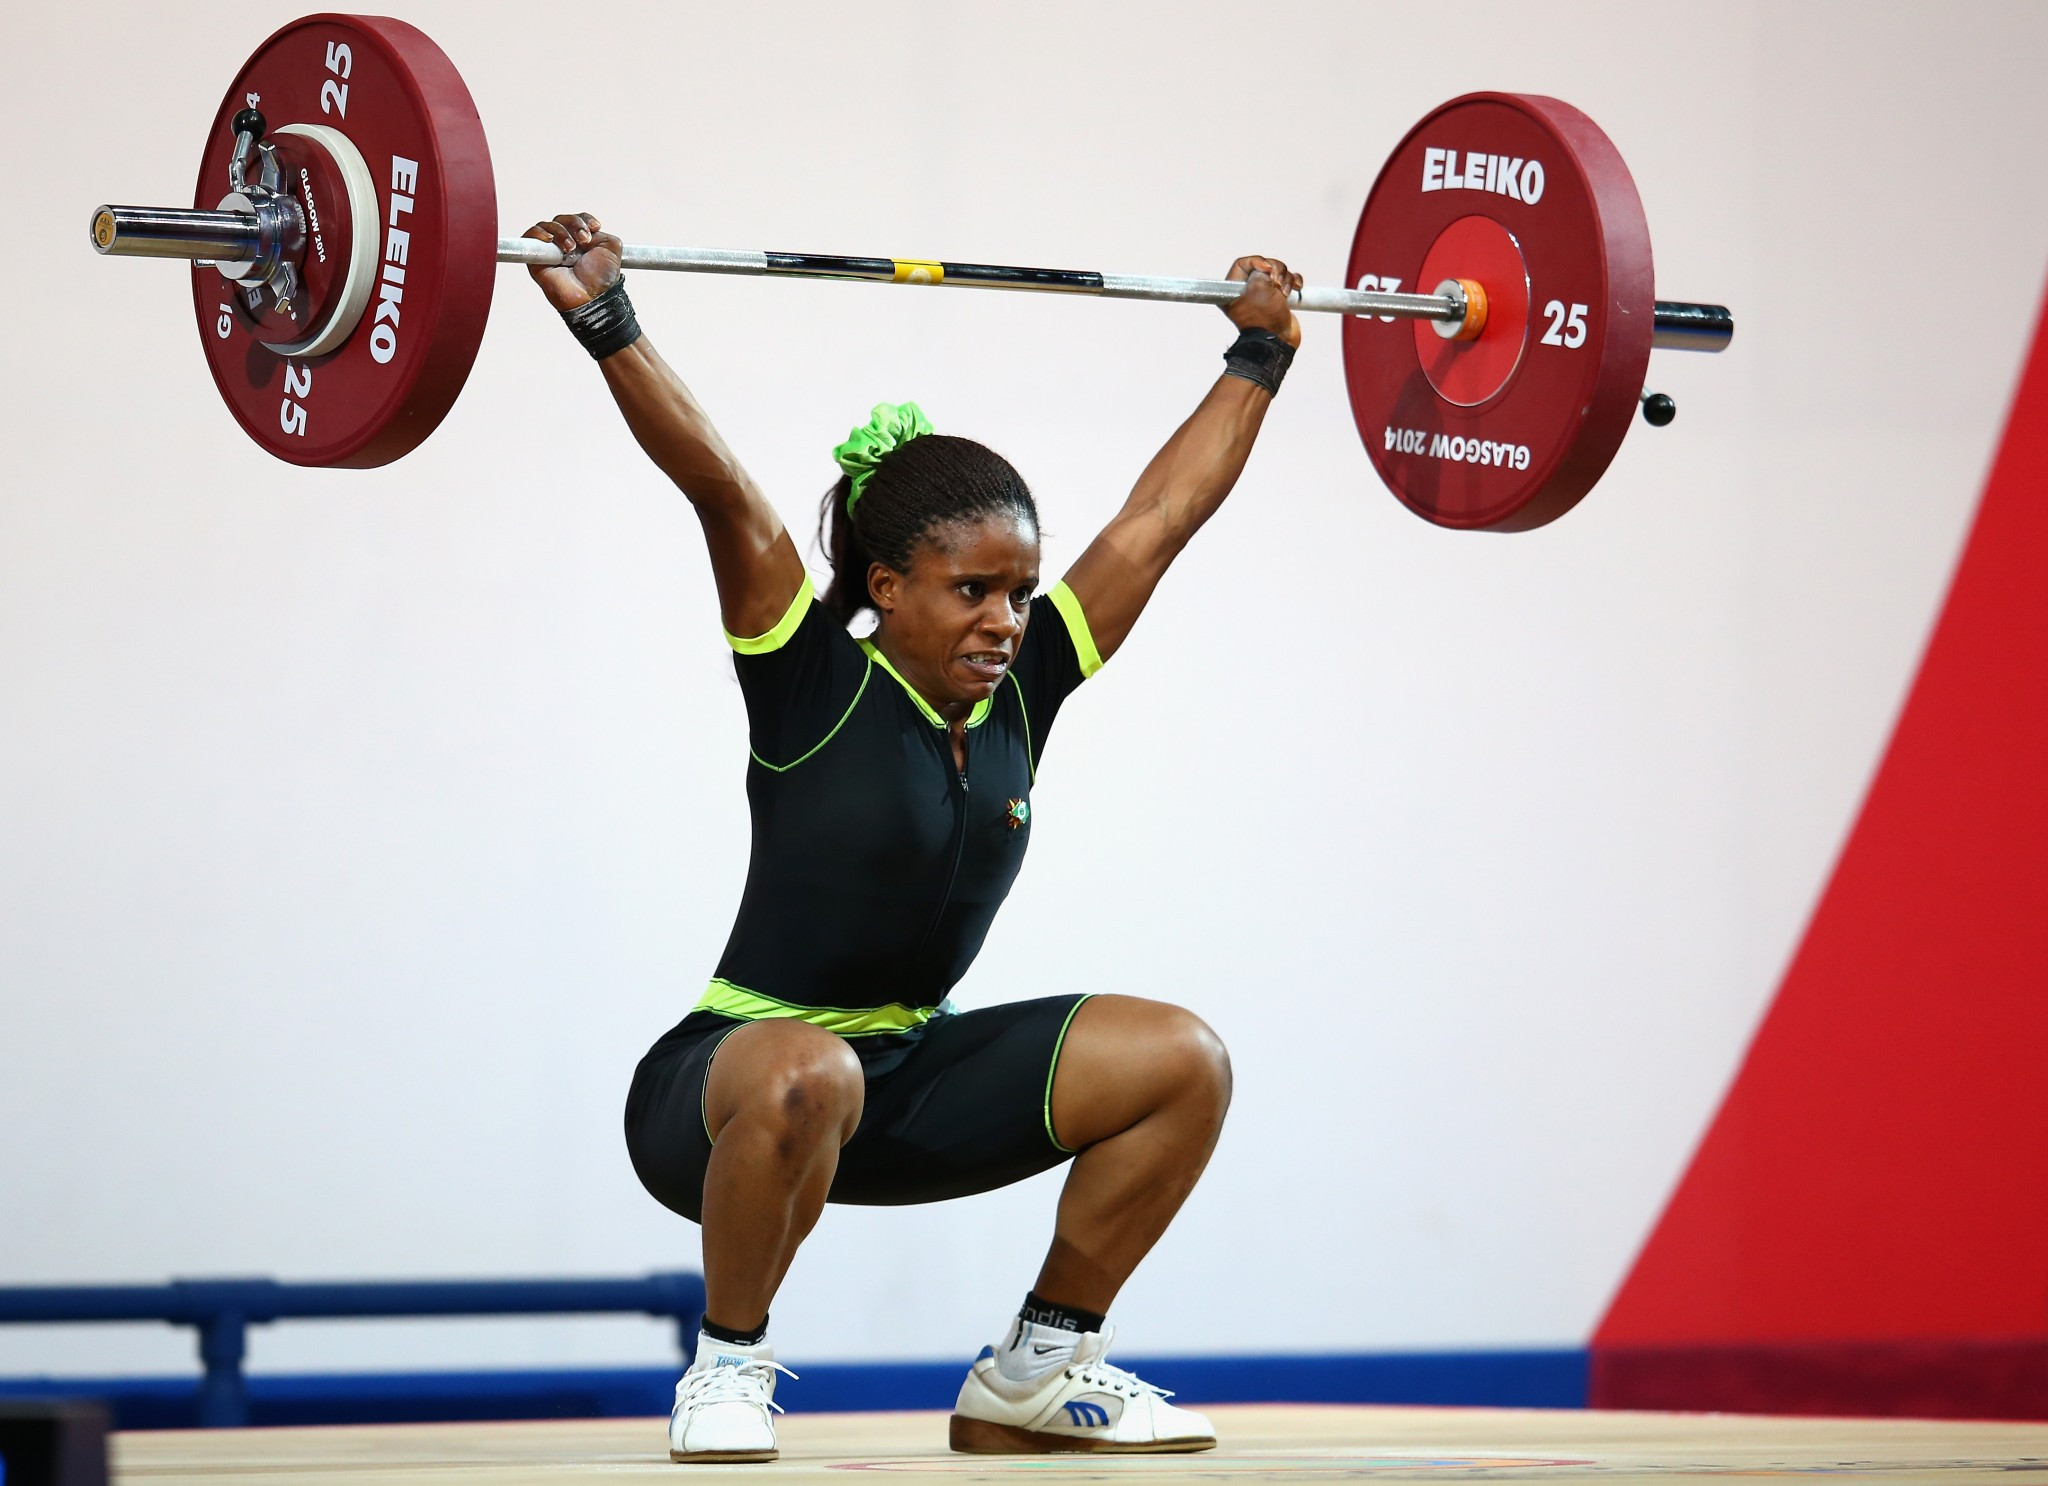 Chika Amalaha was stripped of her Glasgow 2014 Commonwealth Games gold medal following a failed drugs test ©Getty Images